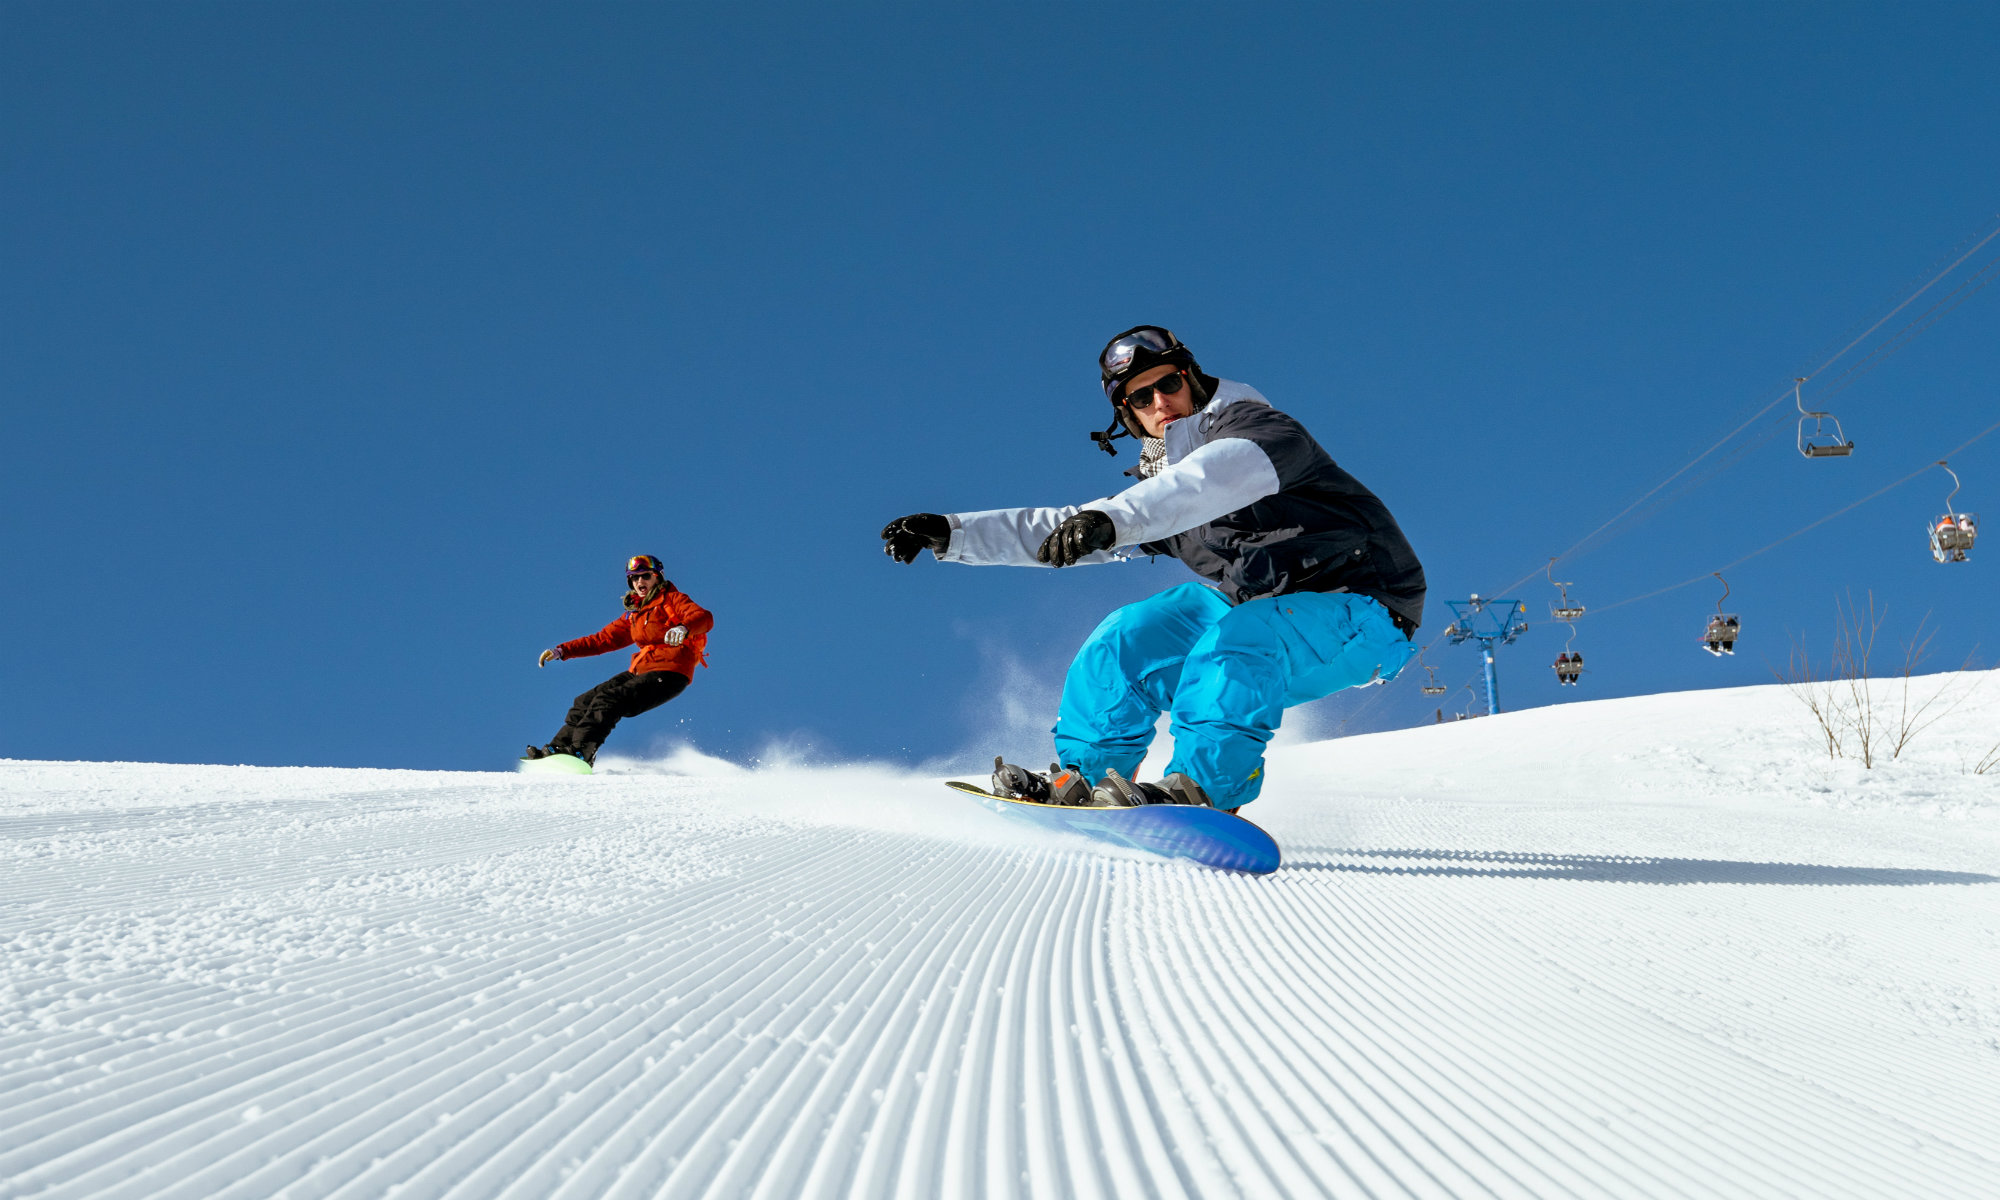 Two snowboarders boarding on freshly-groomed slopes